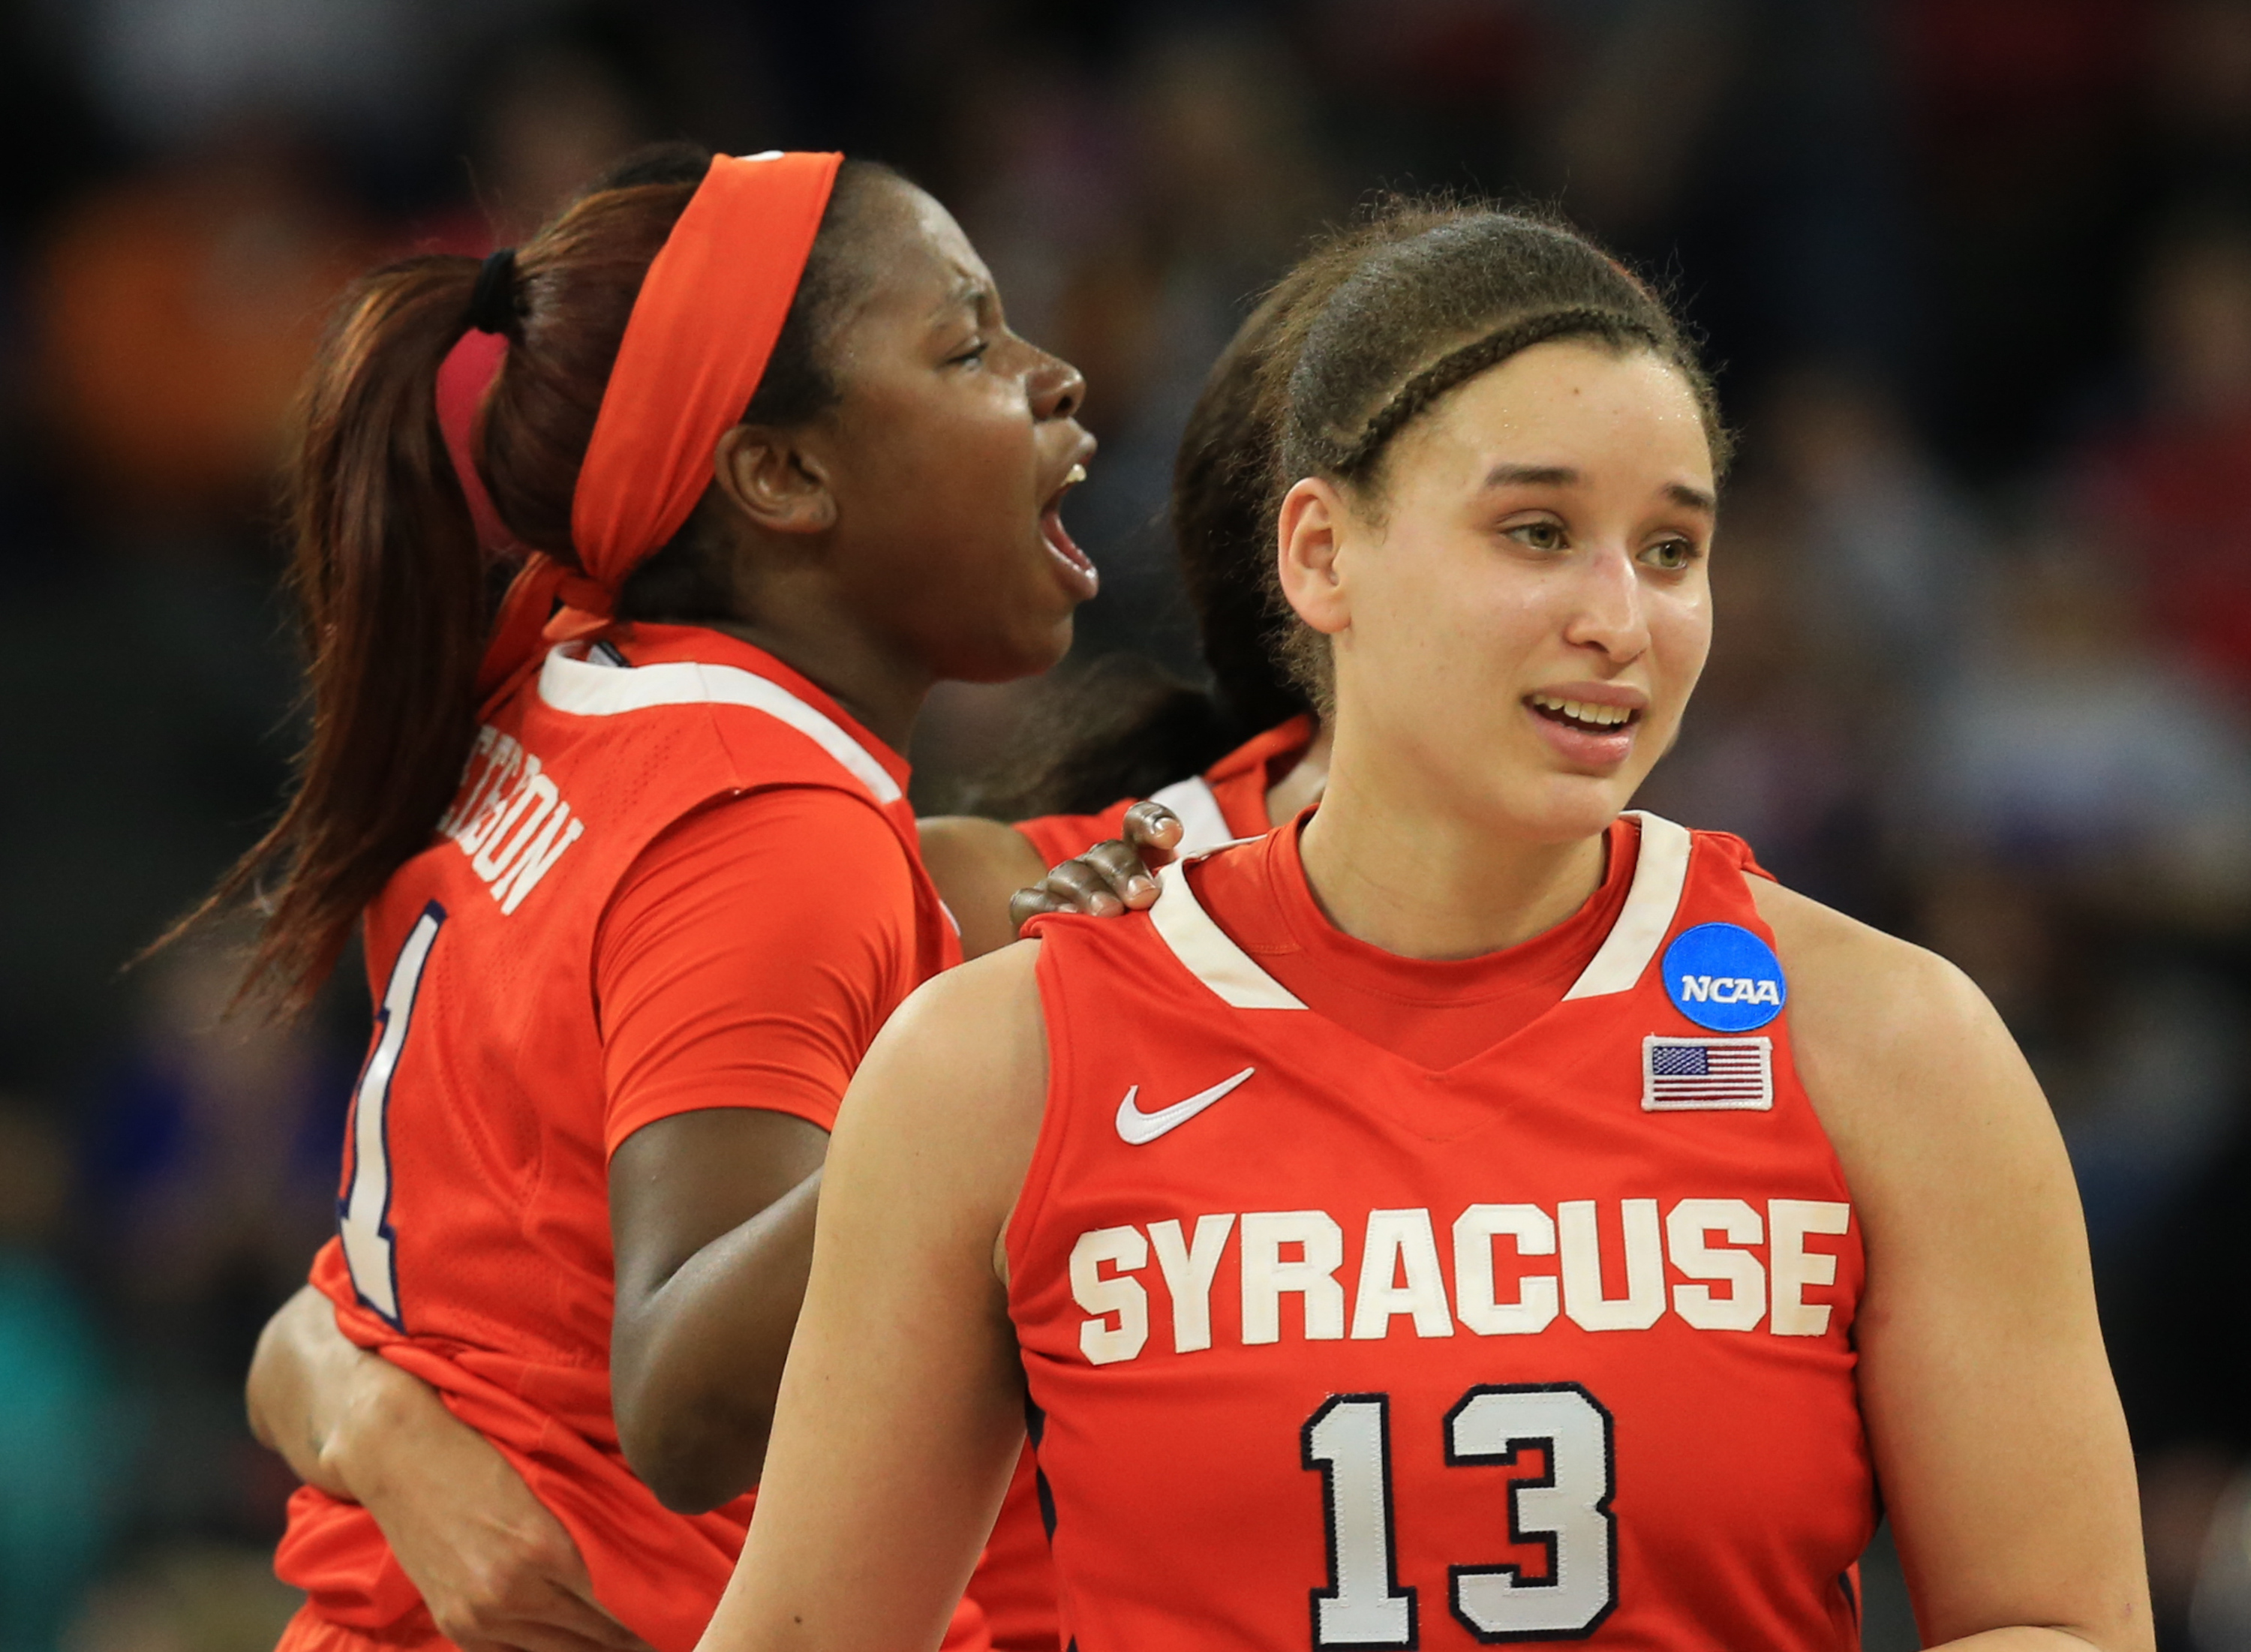 Syracuse's Alexis Peterson (1) and Brianna Butler (13) react following a women's college basketball regional semifinal against South Carolina in the NCAA Tournament in Sioux Falls, S.D., Friday, March 25, 2016. (AP Photo/Nati Harnik)